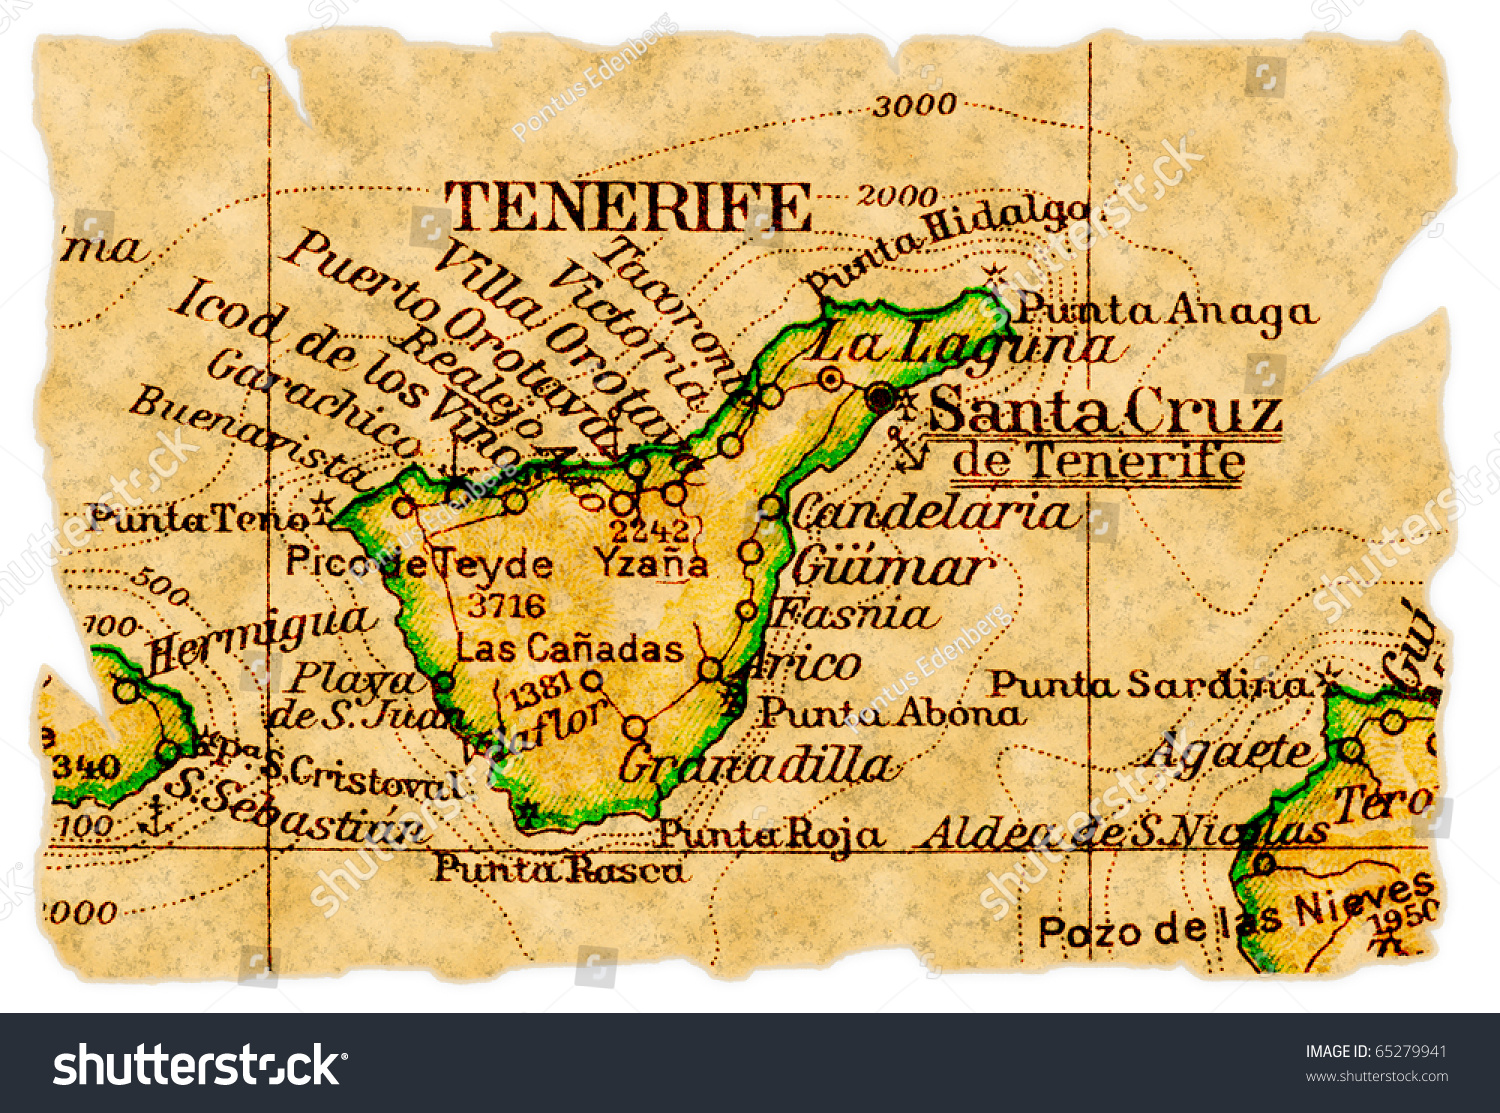 Tenerife Canary Islands On Old Torn Stock Photo - Tenerife on a world map